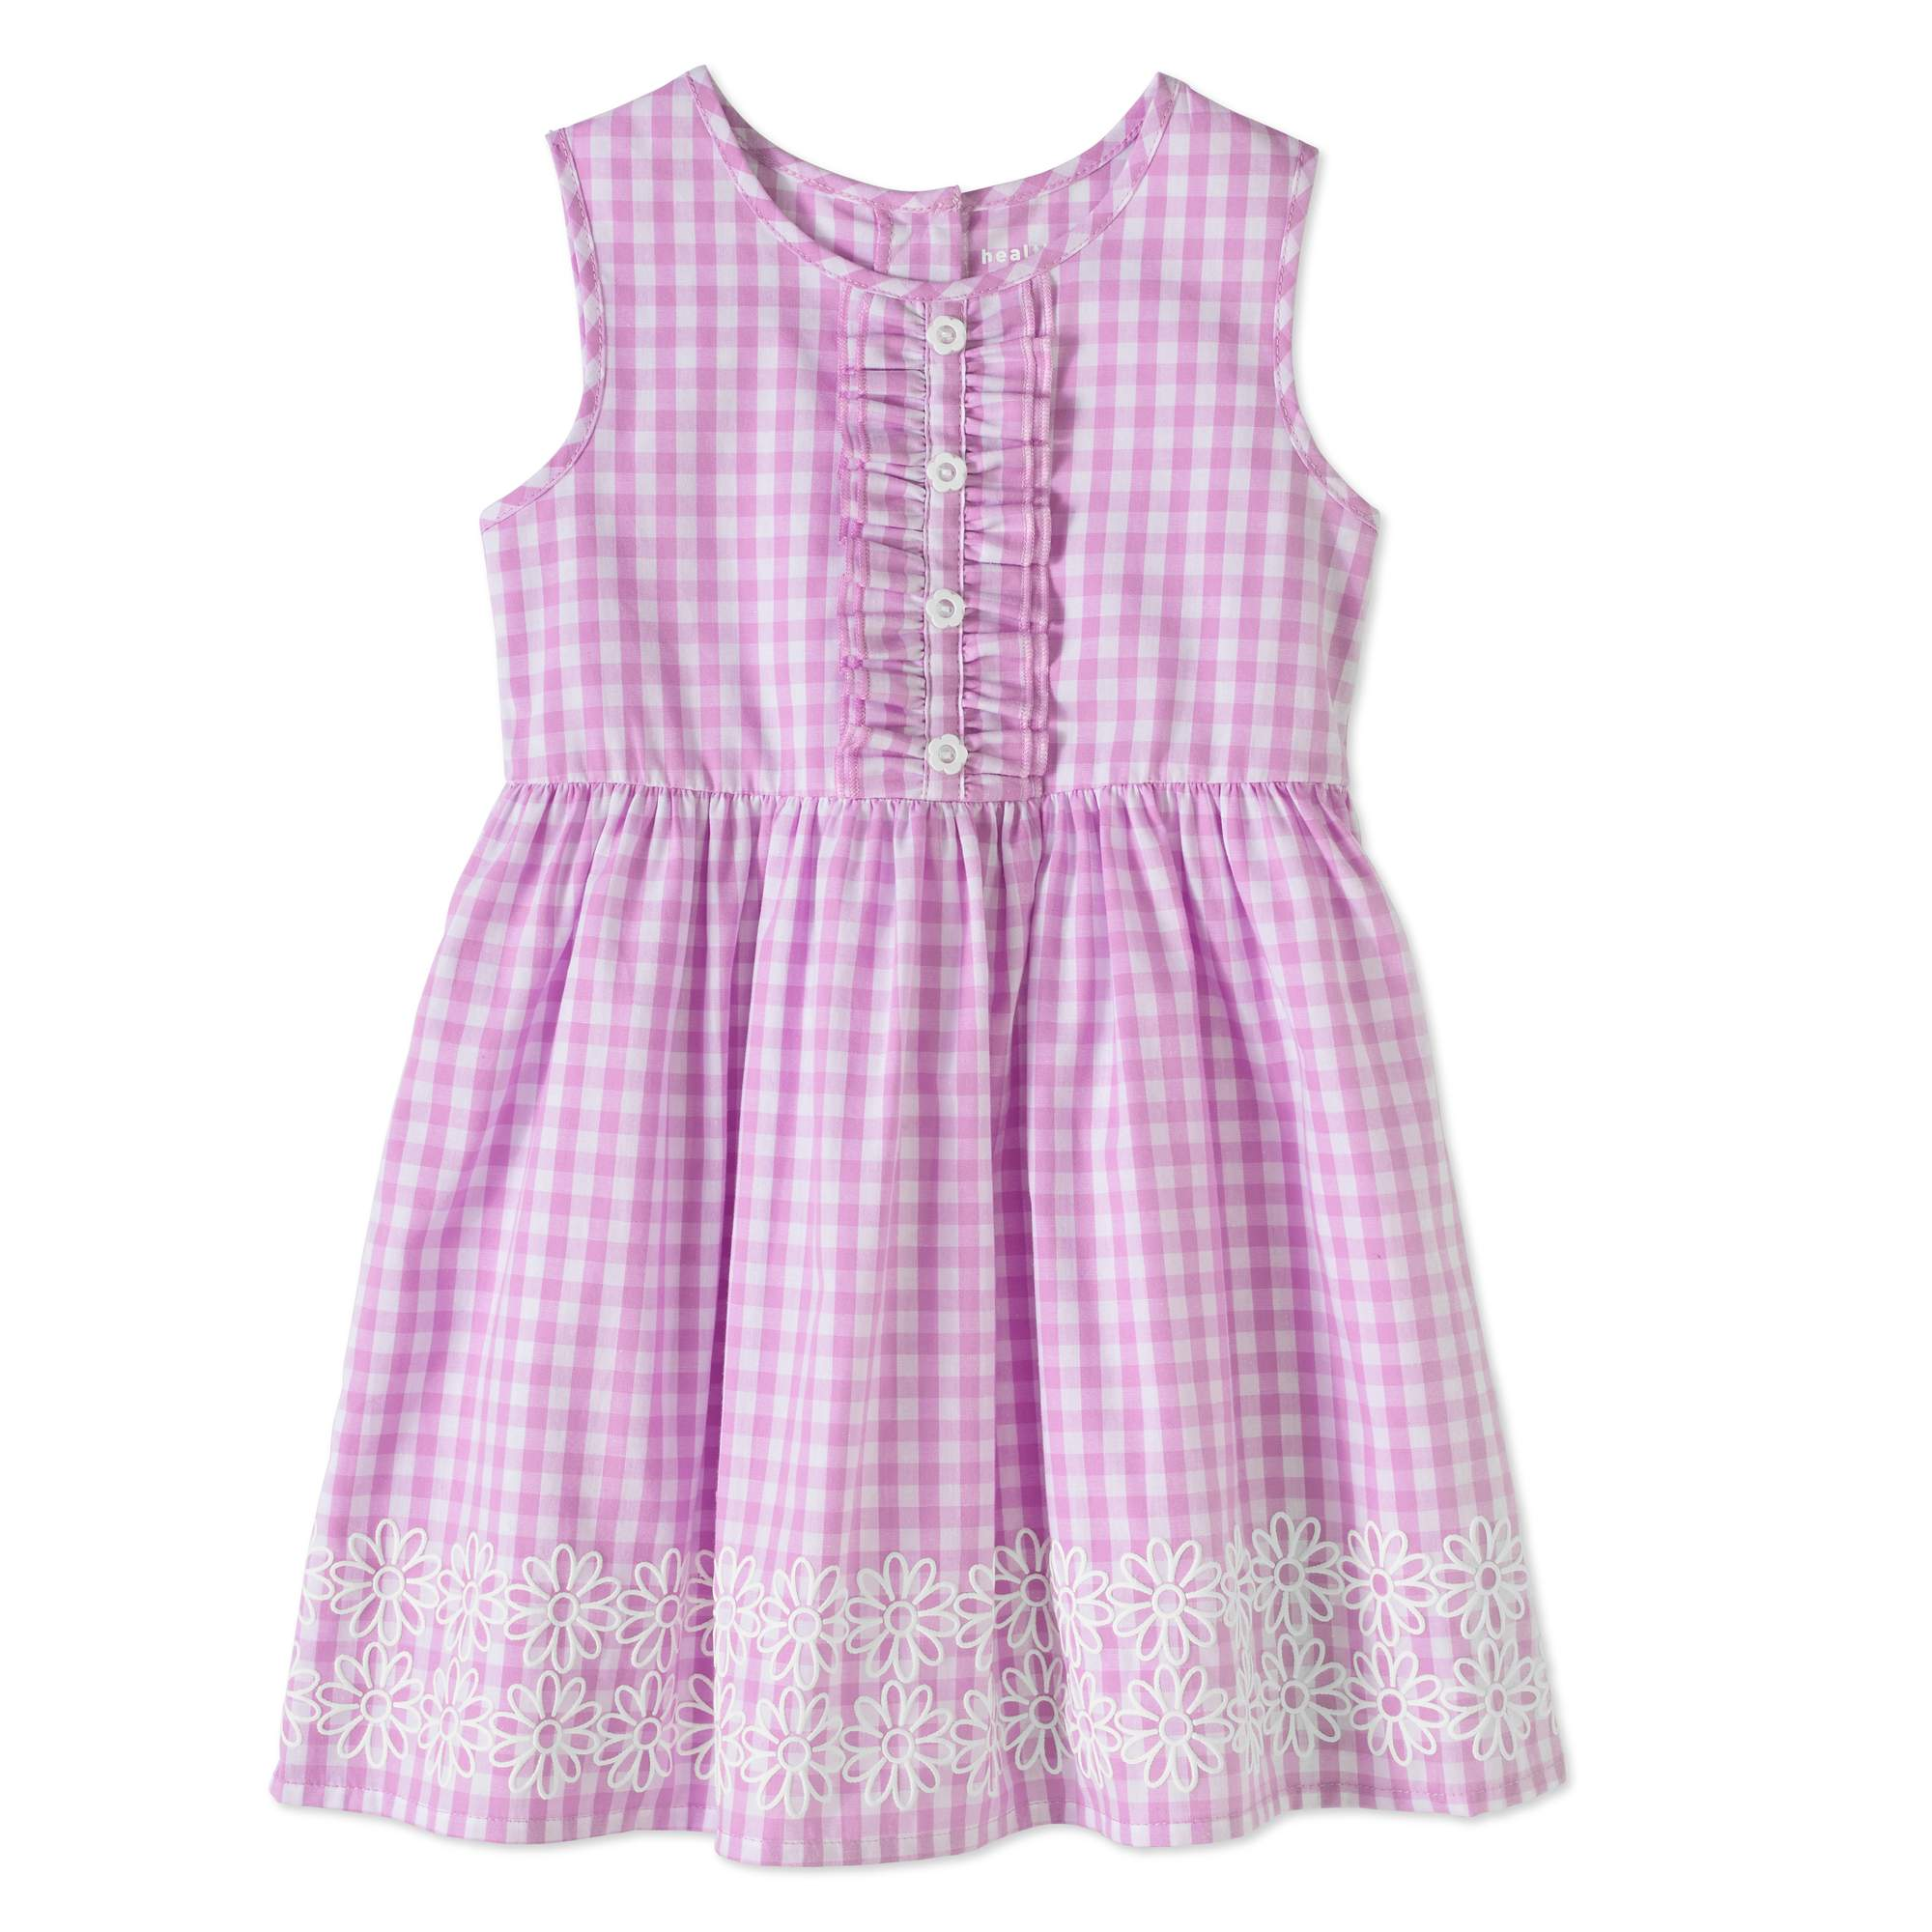 Healthtex Toddler Girls' Ruffle Front Sleeveless Floral Border Dress